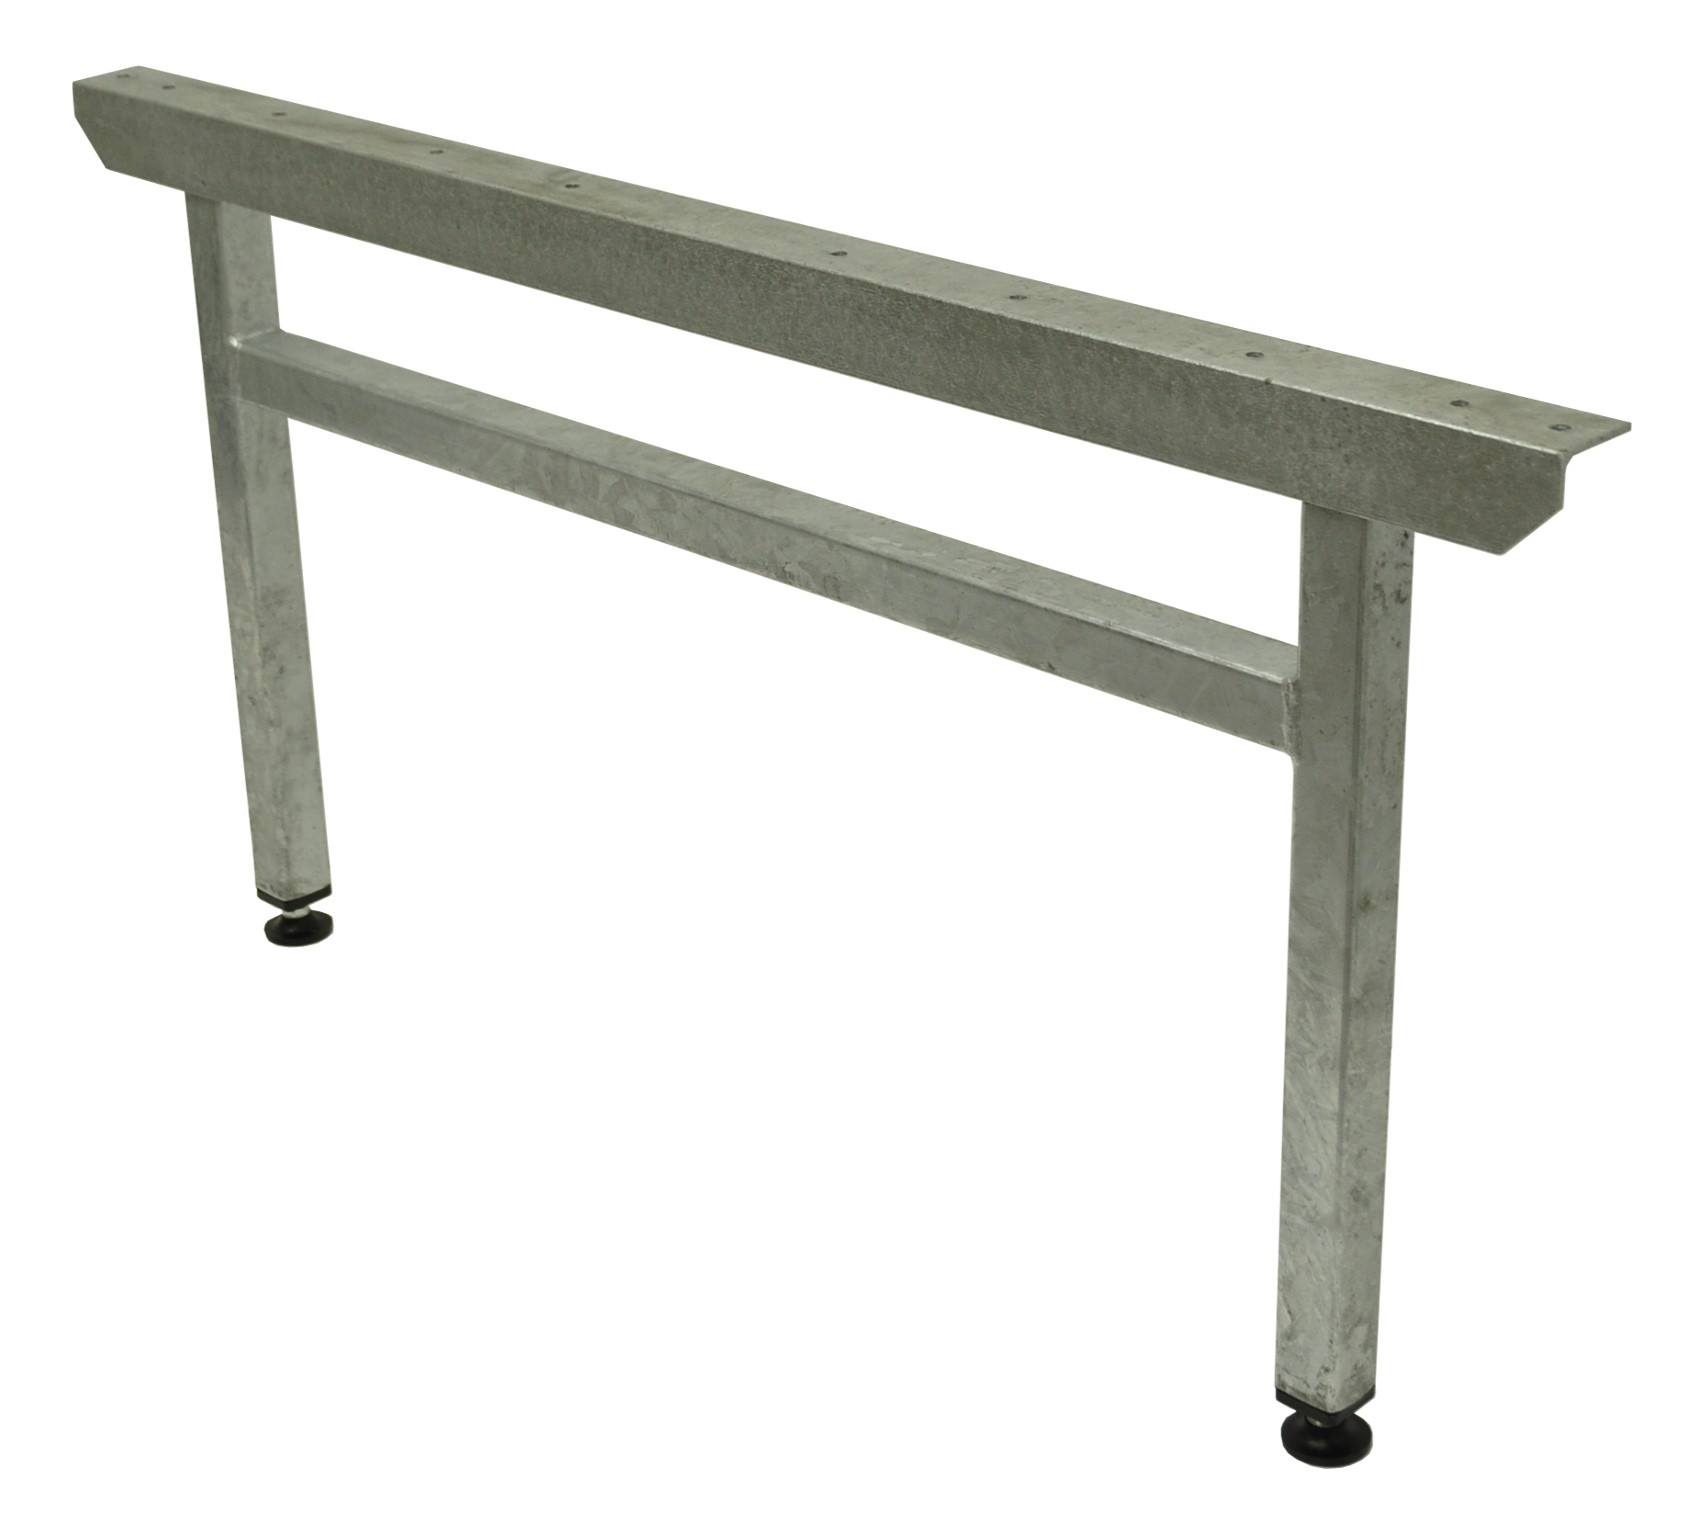 Yarra Island 1000mm wide Bench Seat Brackets